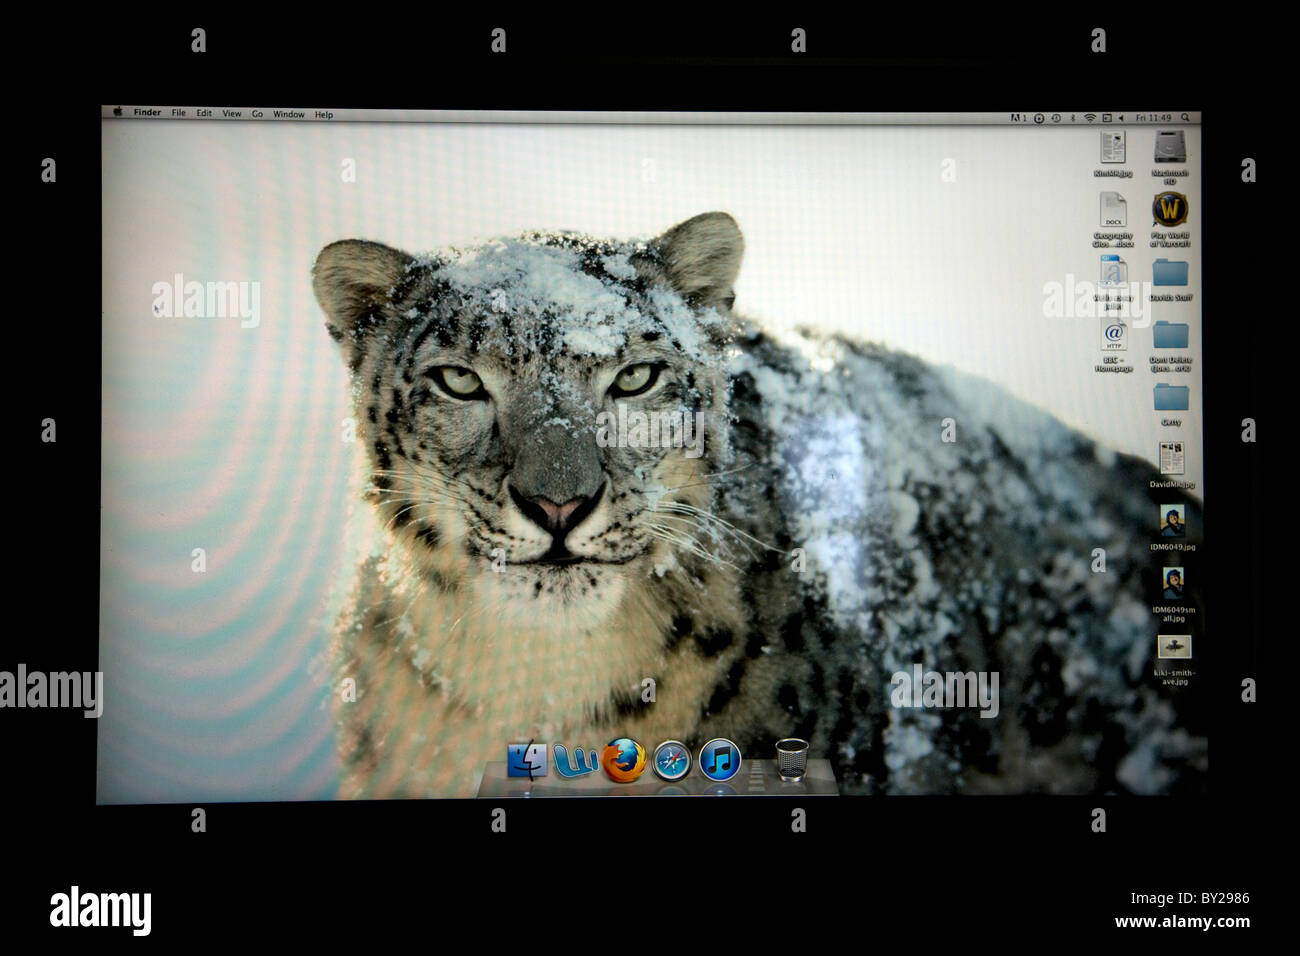 Apple Mac OS Snow Leopard écran de bureau Photo Stock